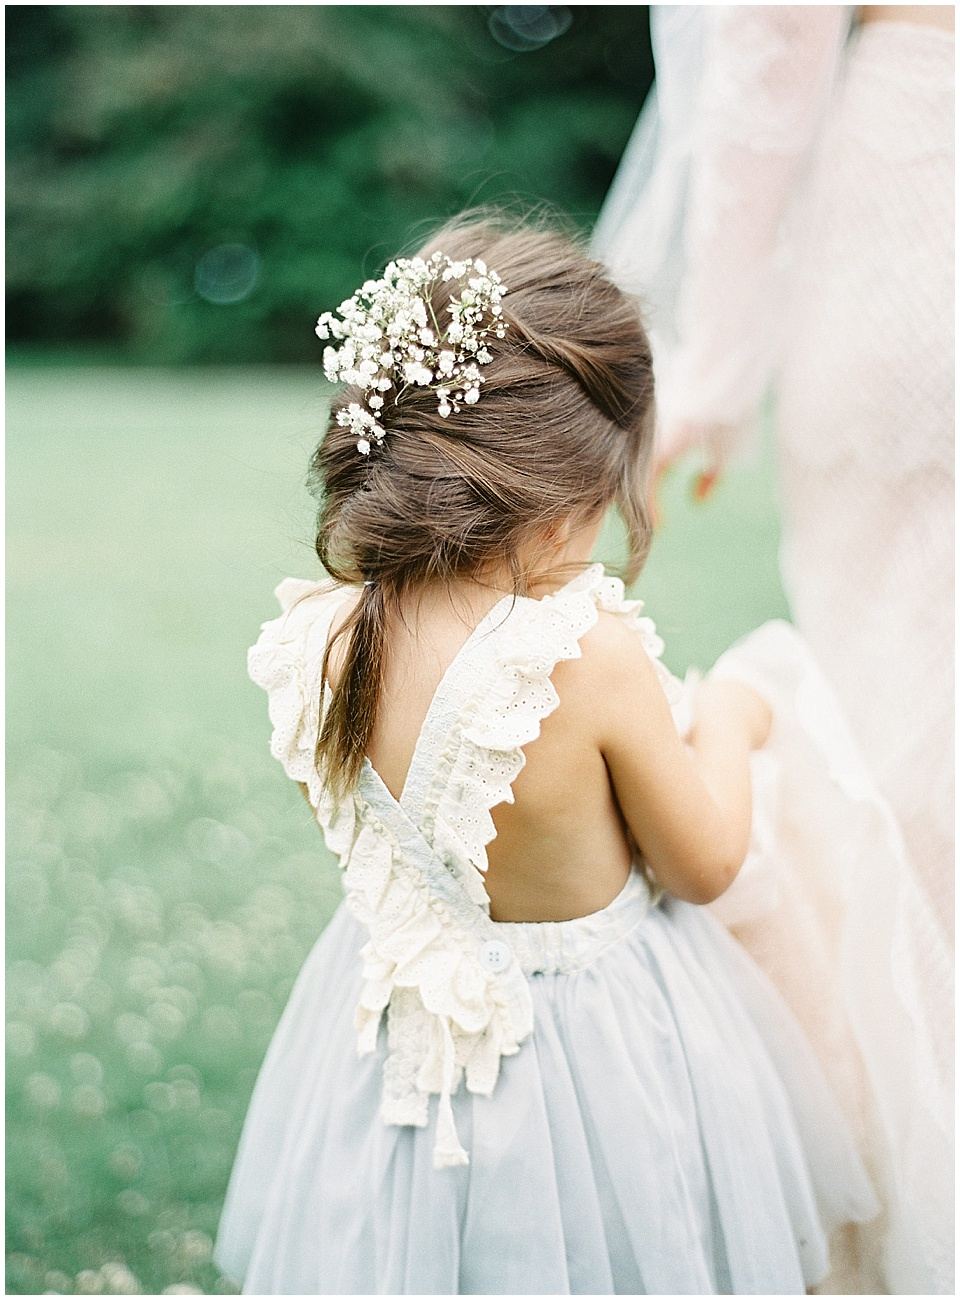 Light blue flower girl dress | Yolan Cris wedding gown | French Wedding Inspiration | France Wedding | Destination Film Photographer | Paris Wedding | Fine Art Film Photographer | Chateau De Carsix | Whiskers and Willow Photography